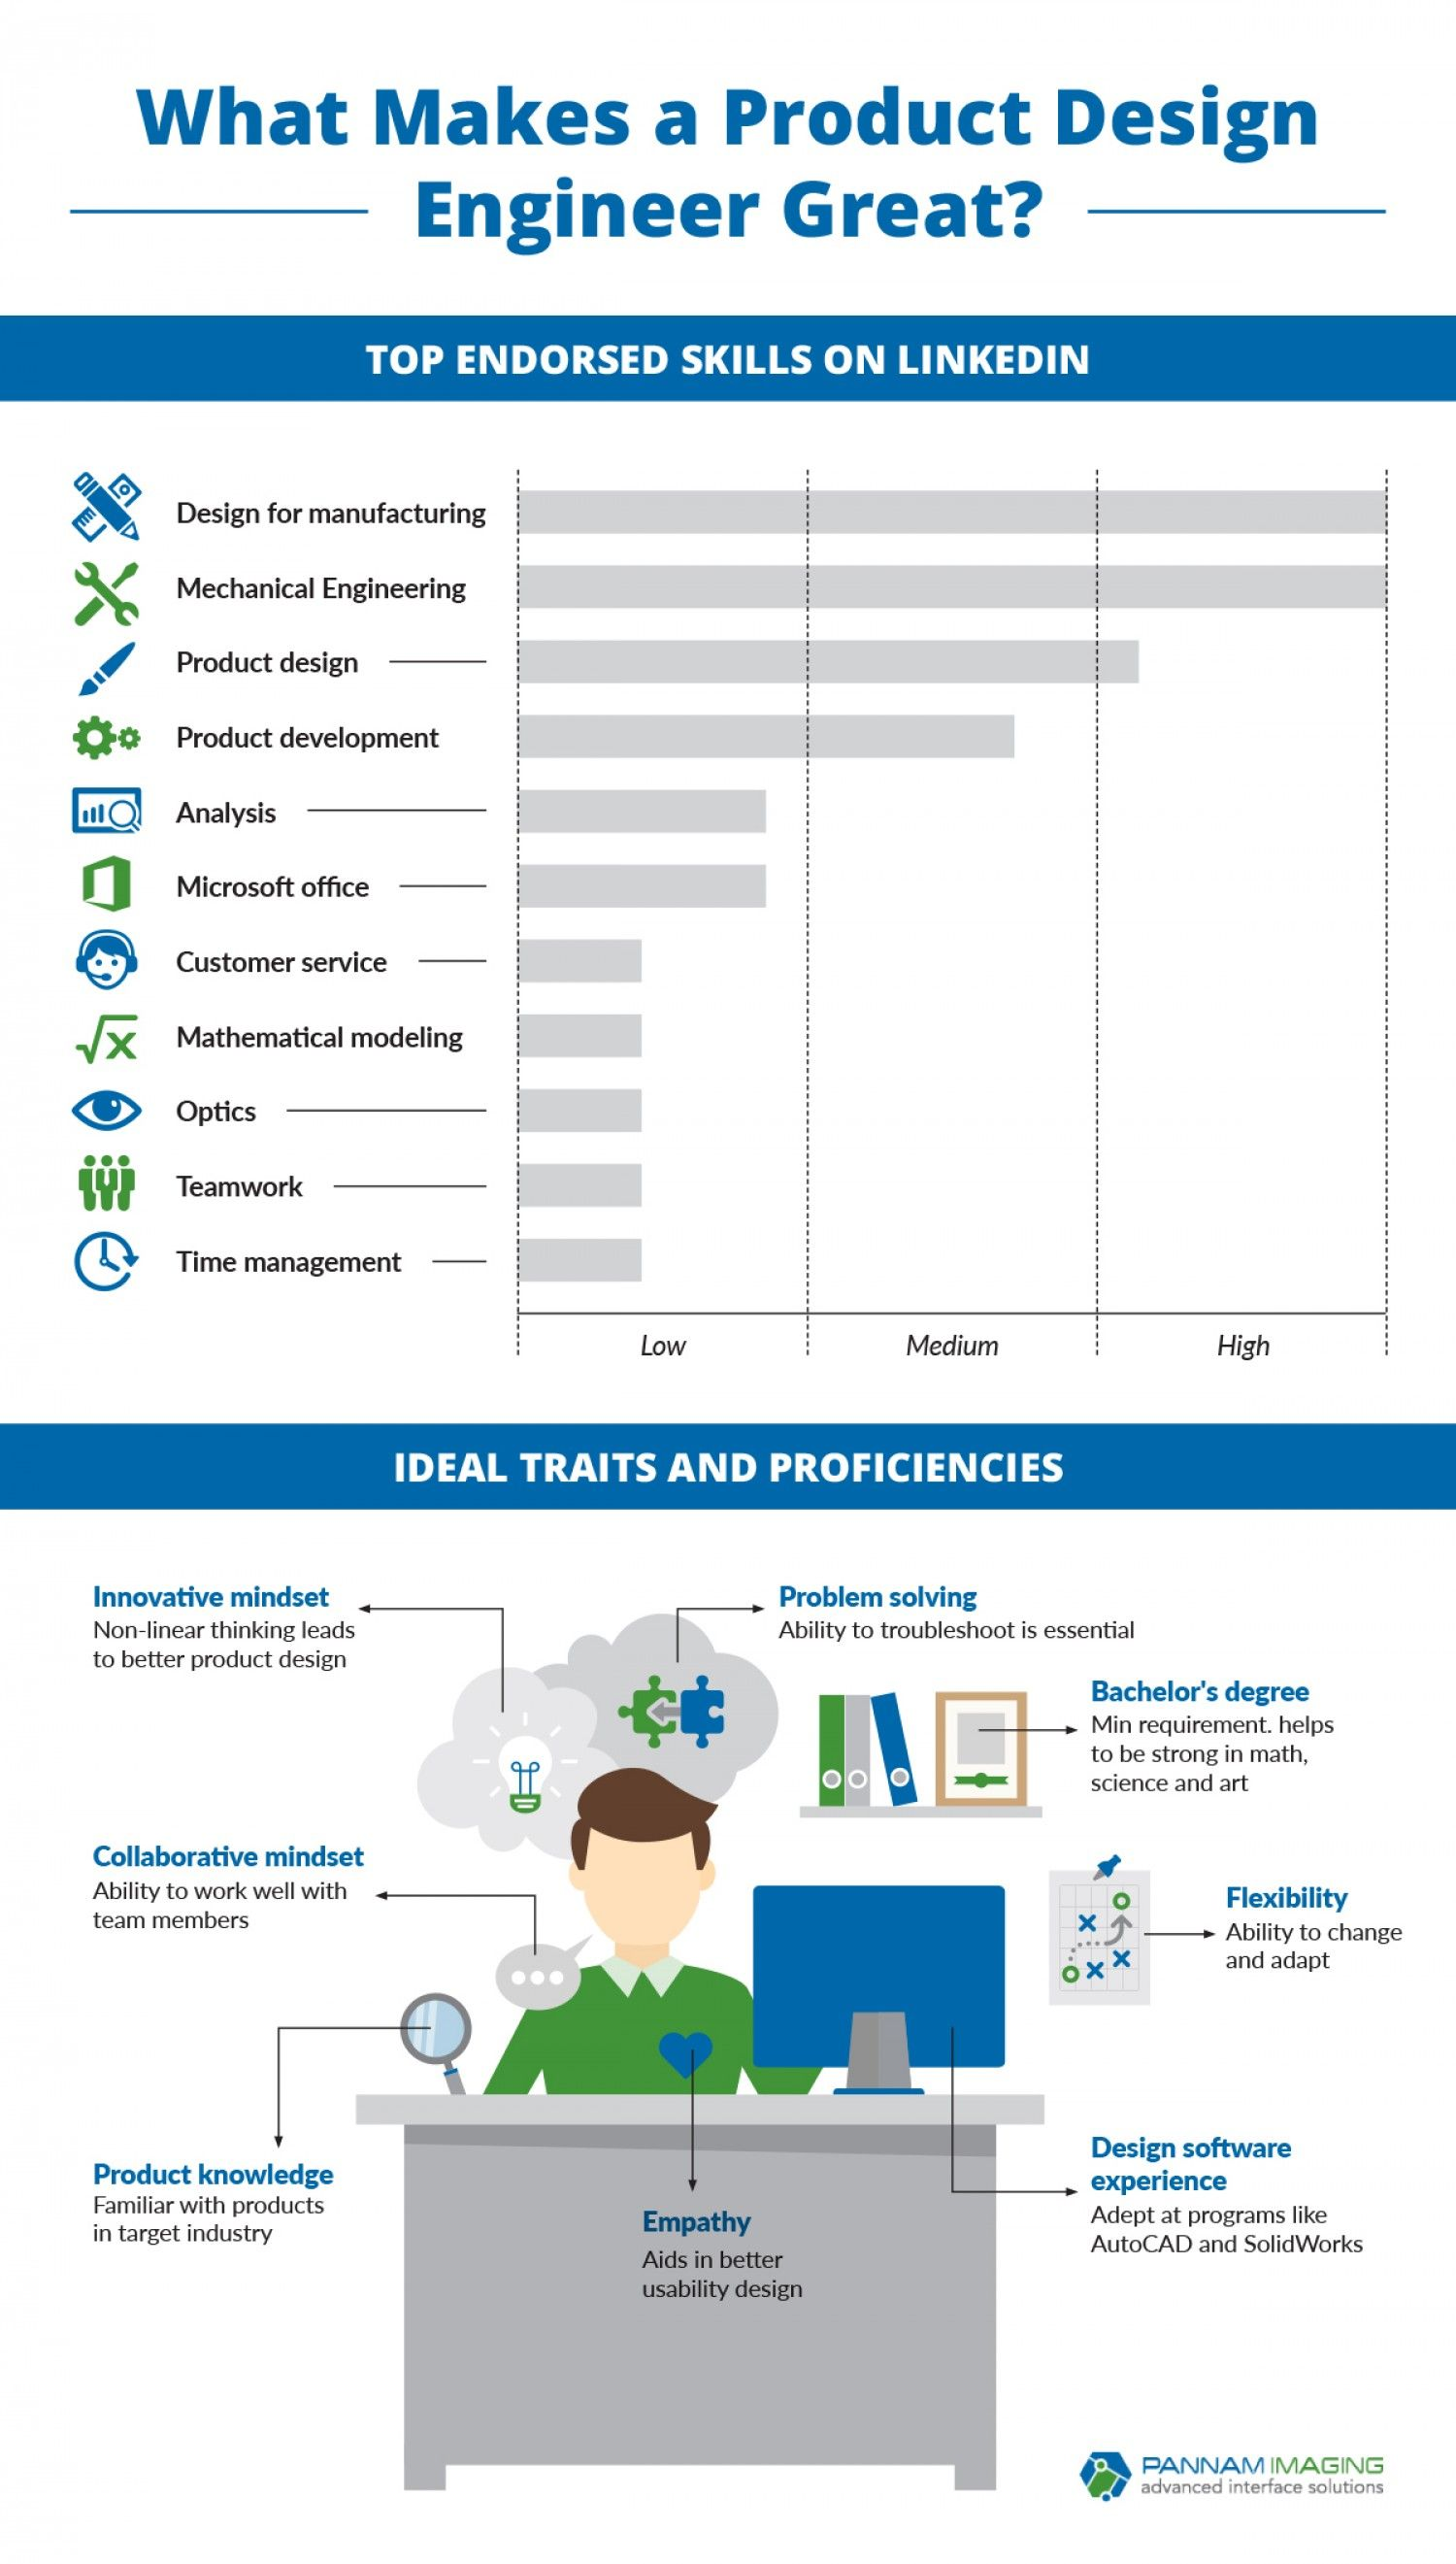 What Makes A Product Design Engineer Great Infographic Skills Productdesigner Engineer Topskills Linkedin Hu Engineering Design Engineering Infographic